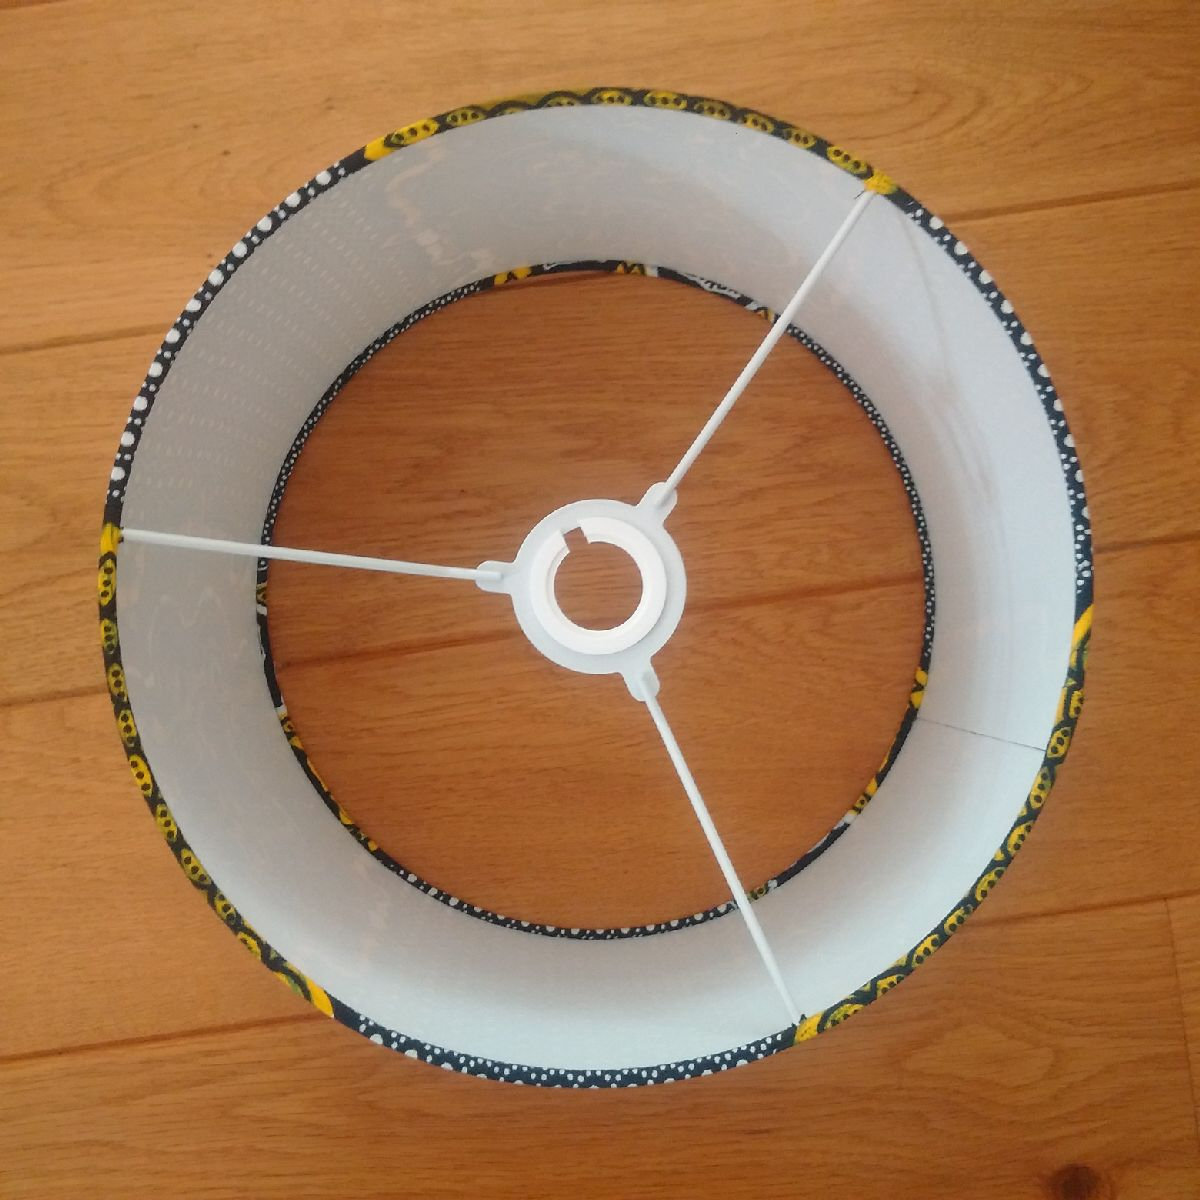 Detola And Geek New Lampshade Design Blue Amp Yellow